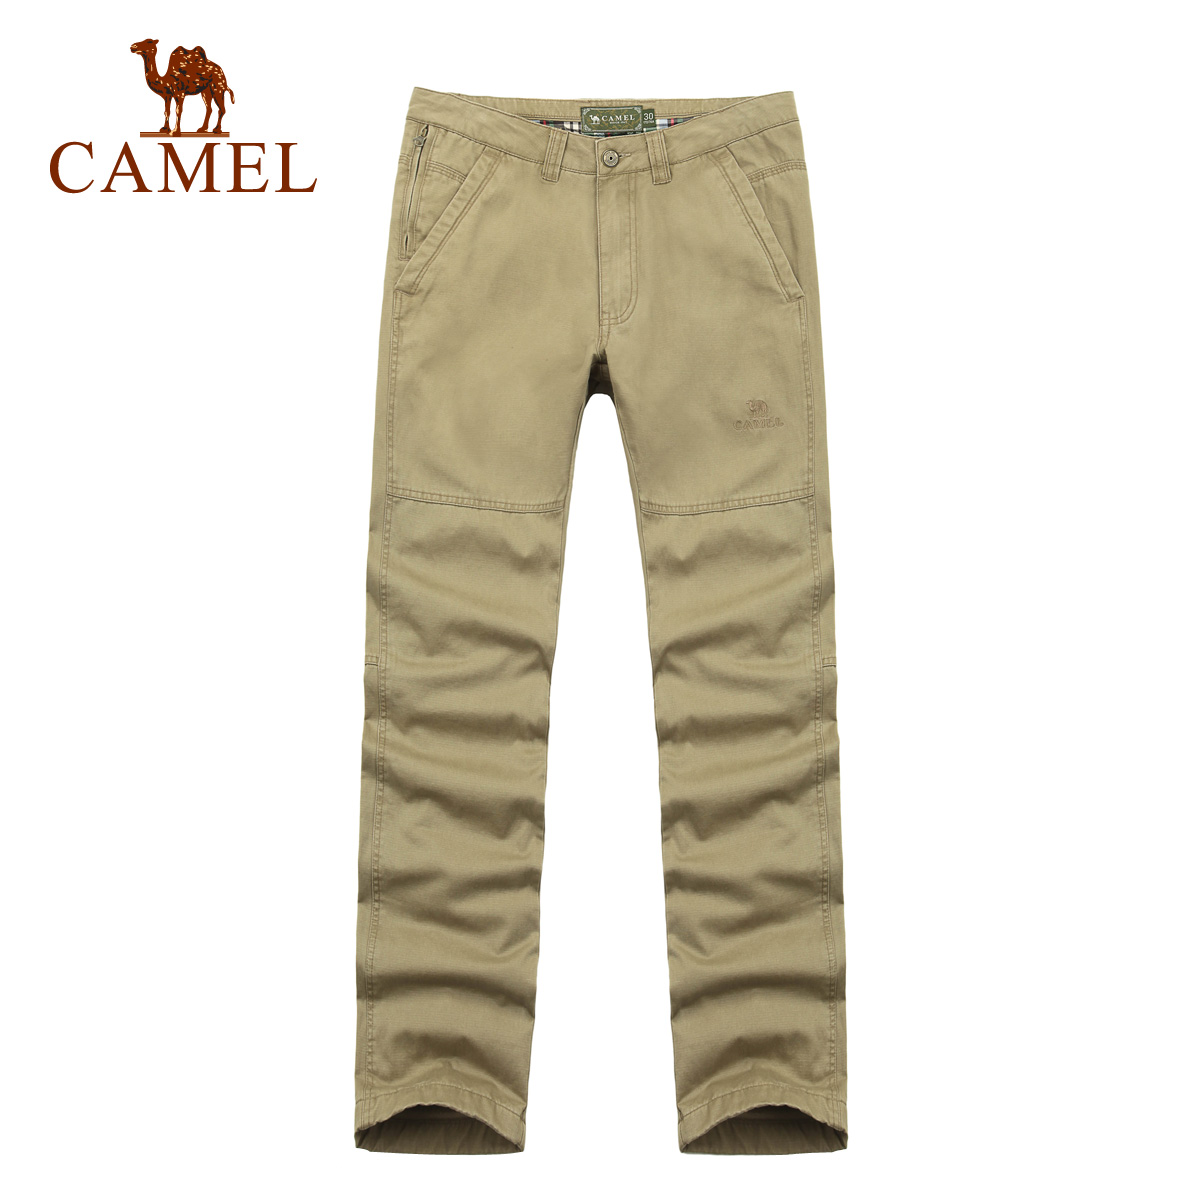 Camel camel outdoor men's casual men's cotton trousers outdoor travel and leisure straight jeans child